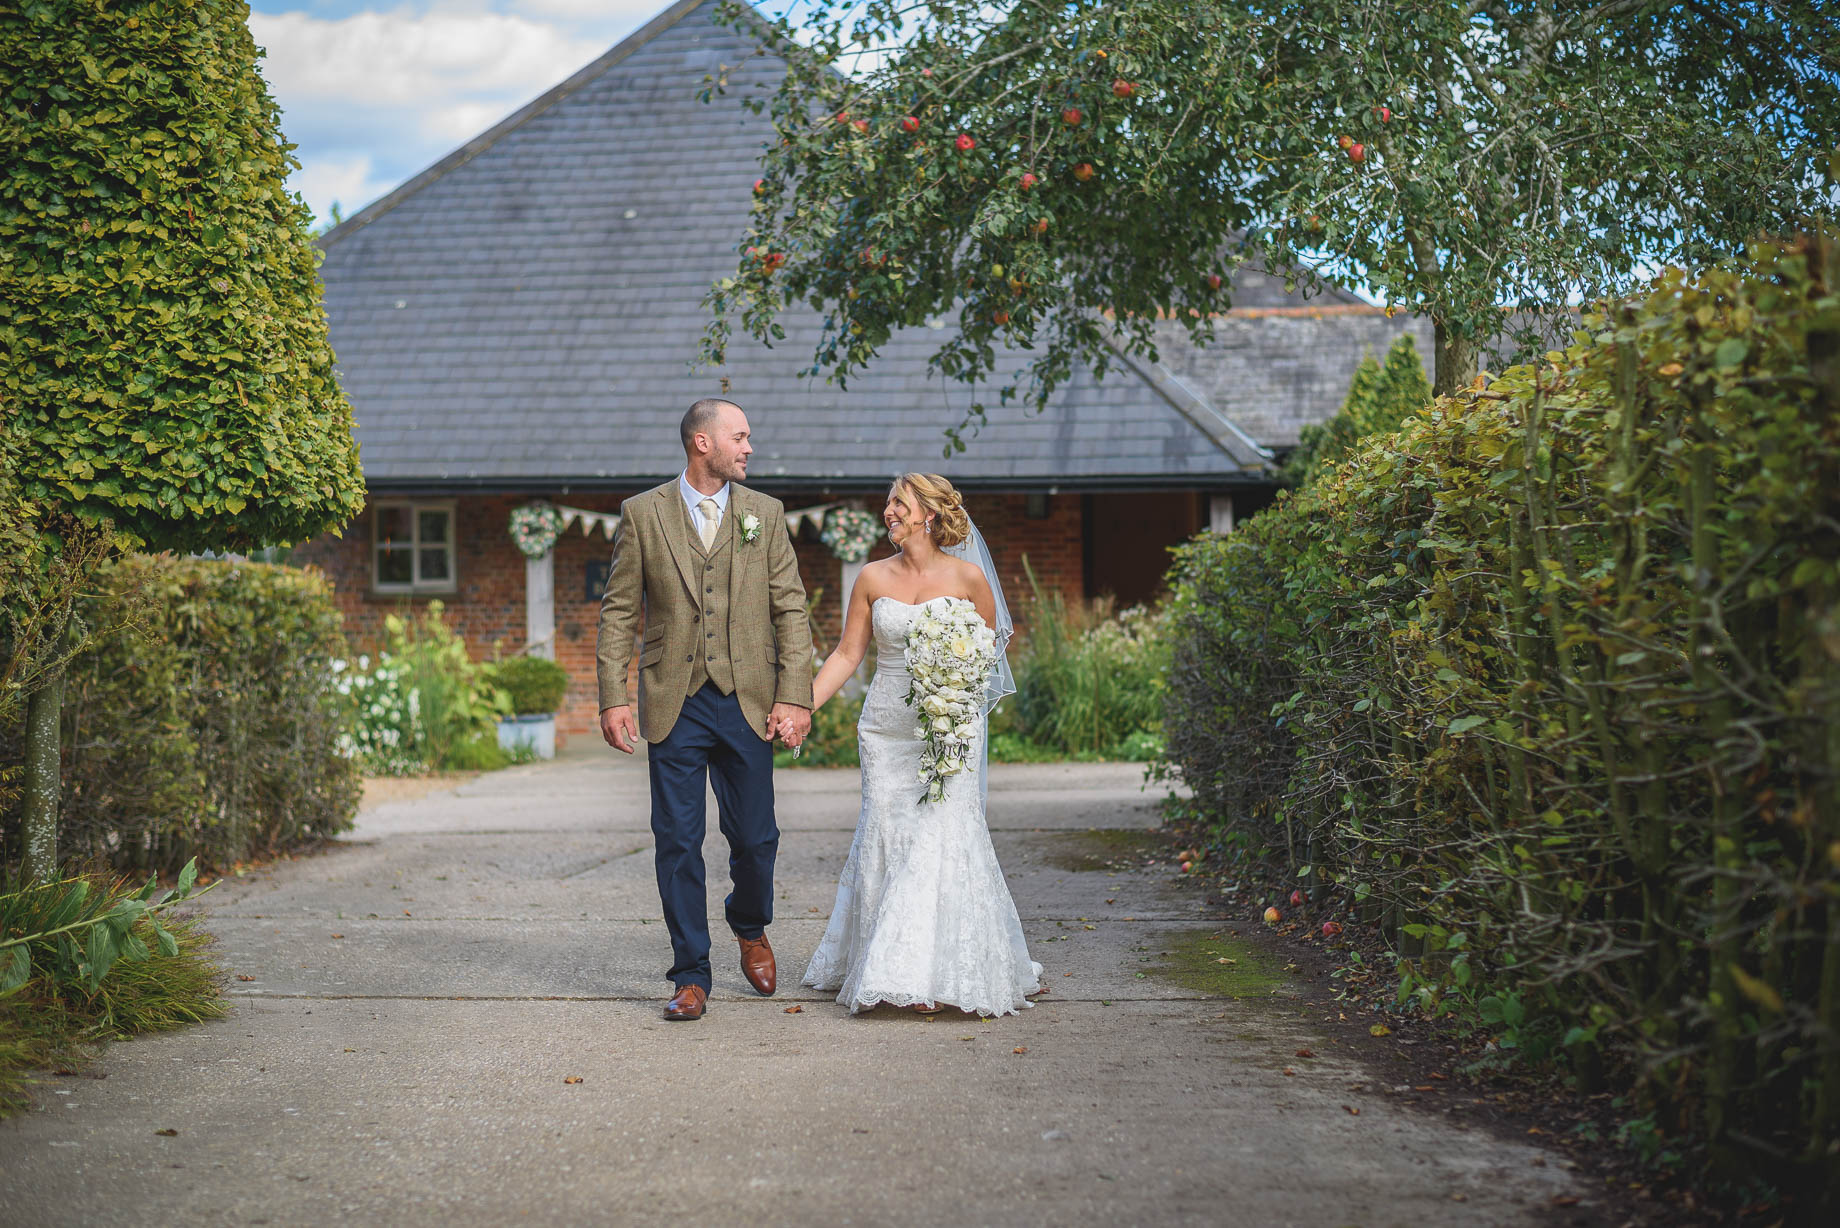 Bury Court Barn wedding photography - Guy Collier - Kate and Russ (102 of 187)